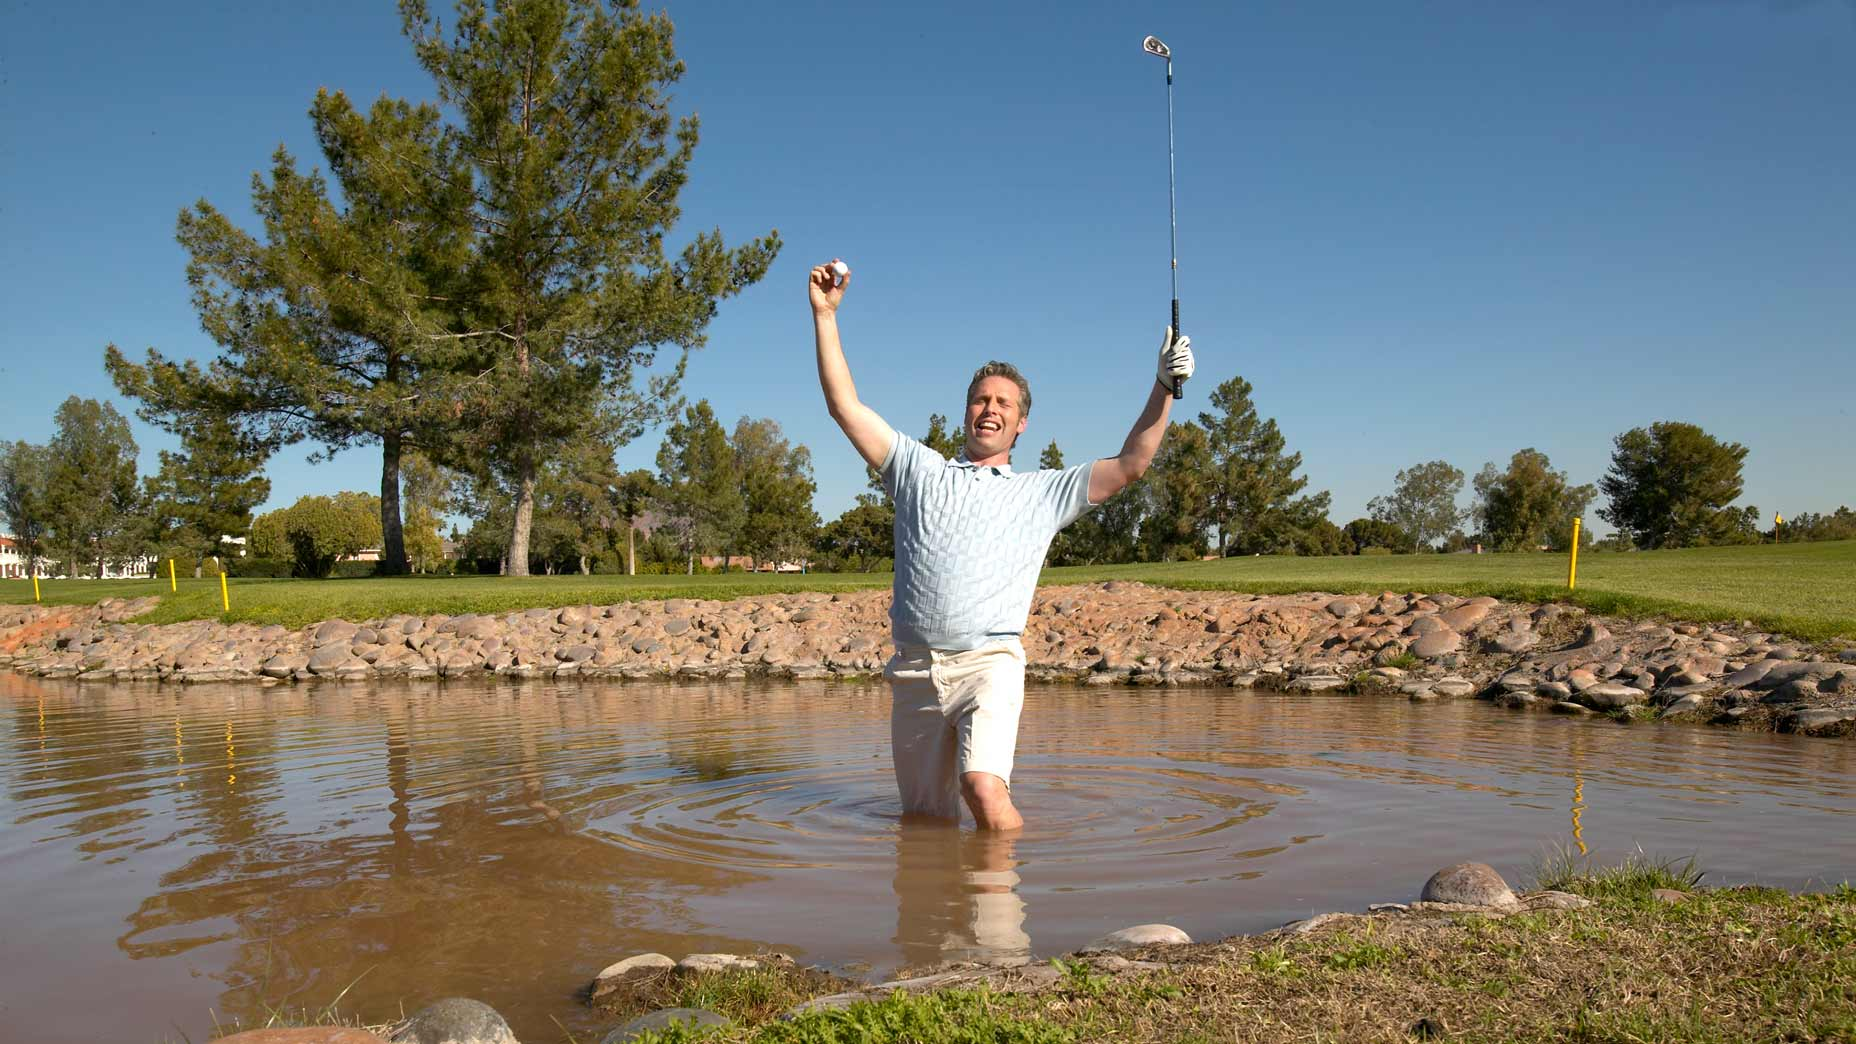 man swims in lake for golf ball